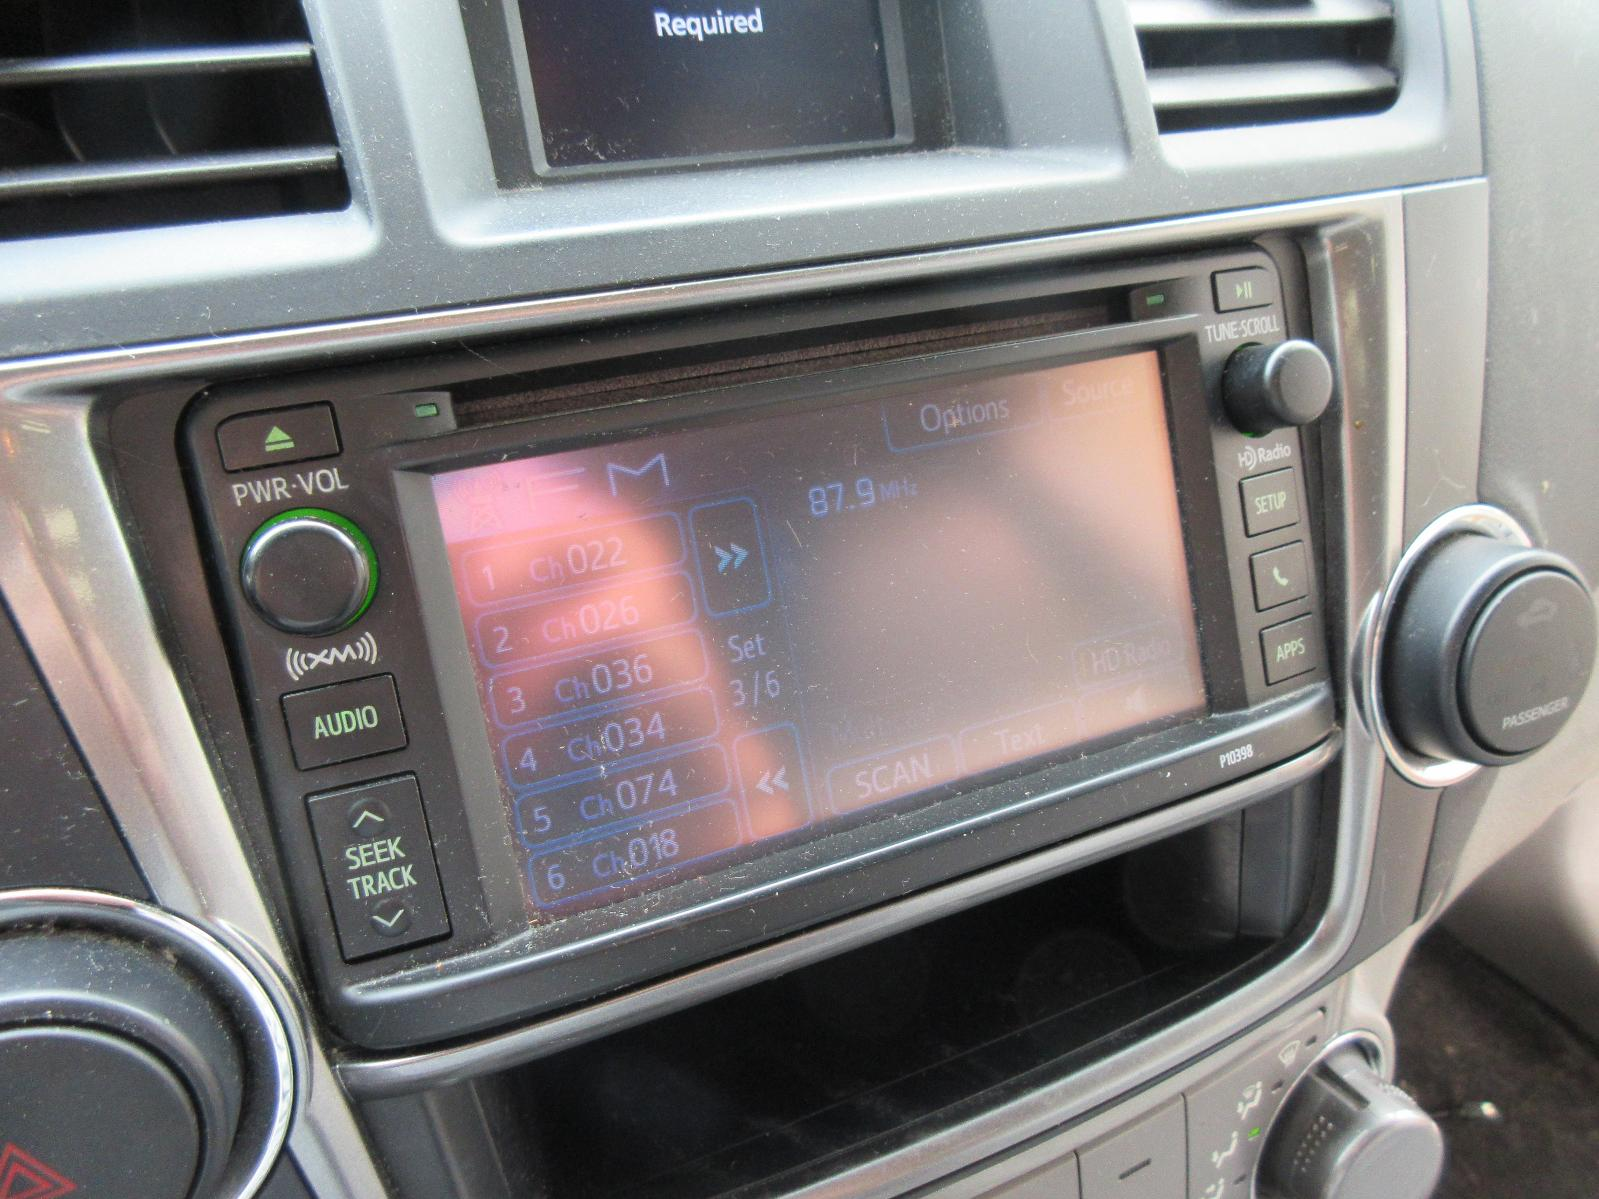 Used Audio Visual System  Radio  For Sale For A 2013 Toyota Highlander